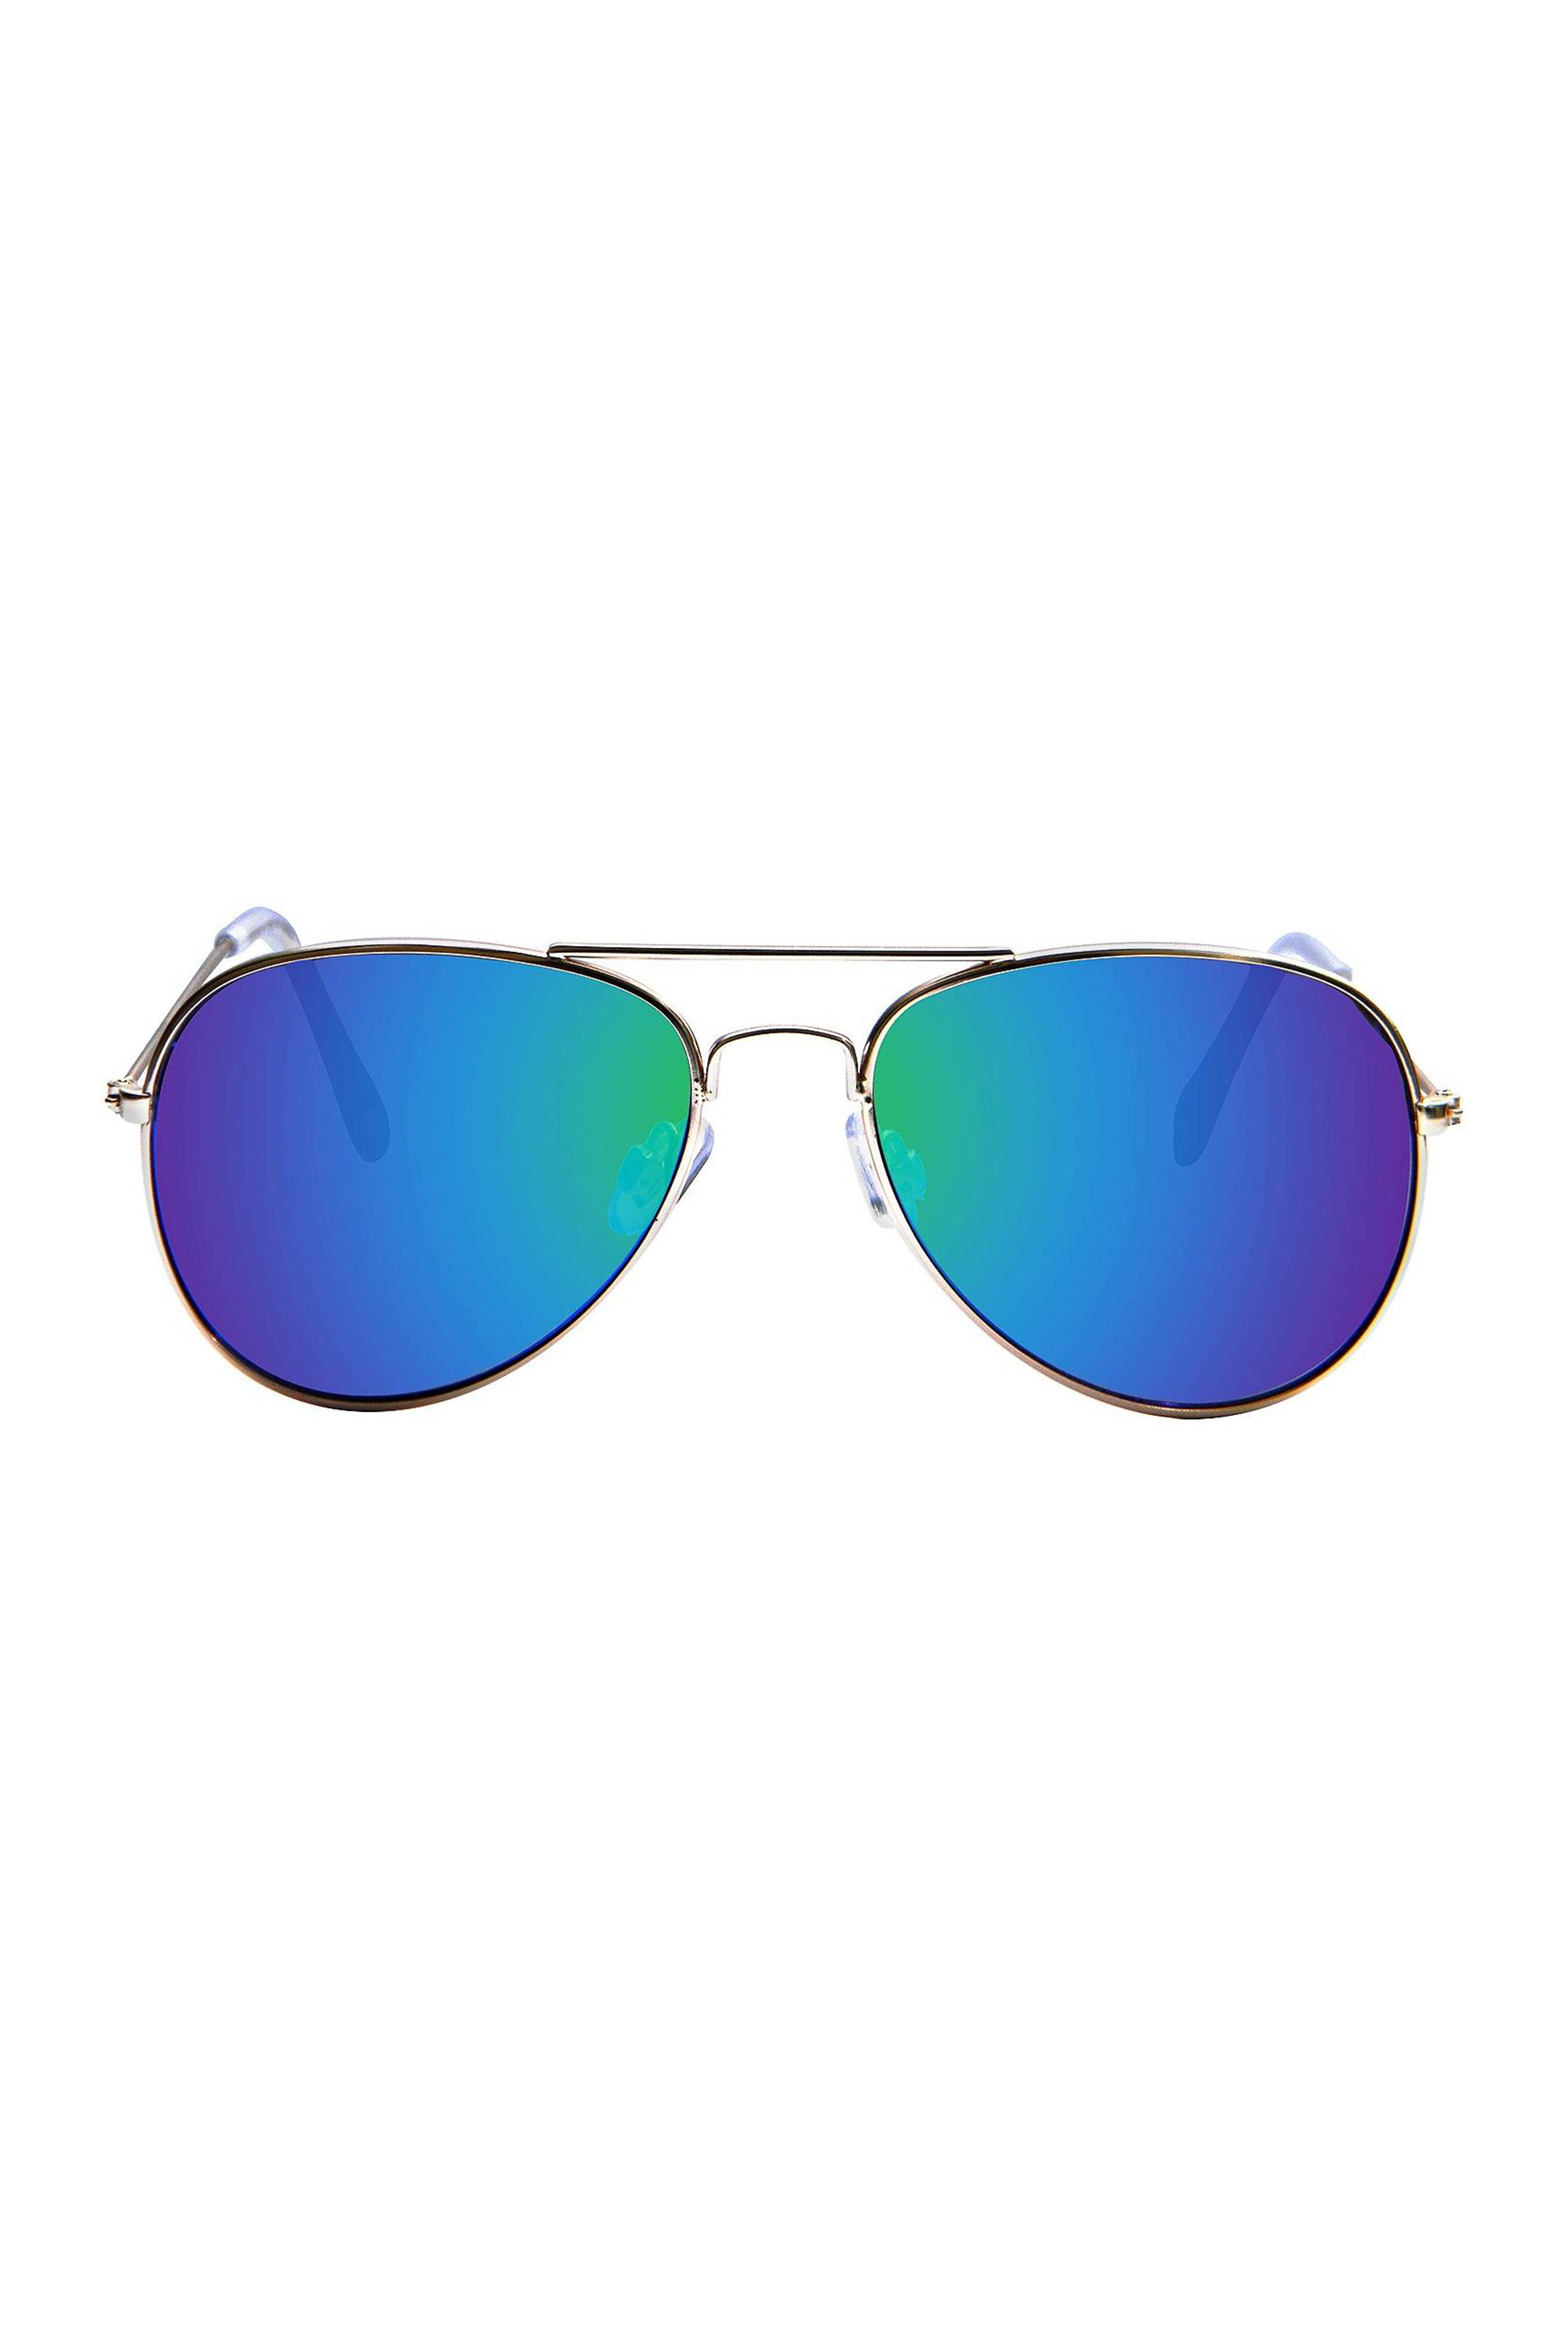 ray ban glasses frames target | shopping center